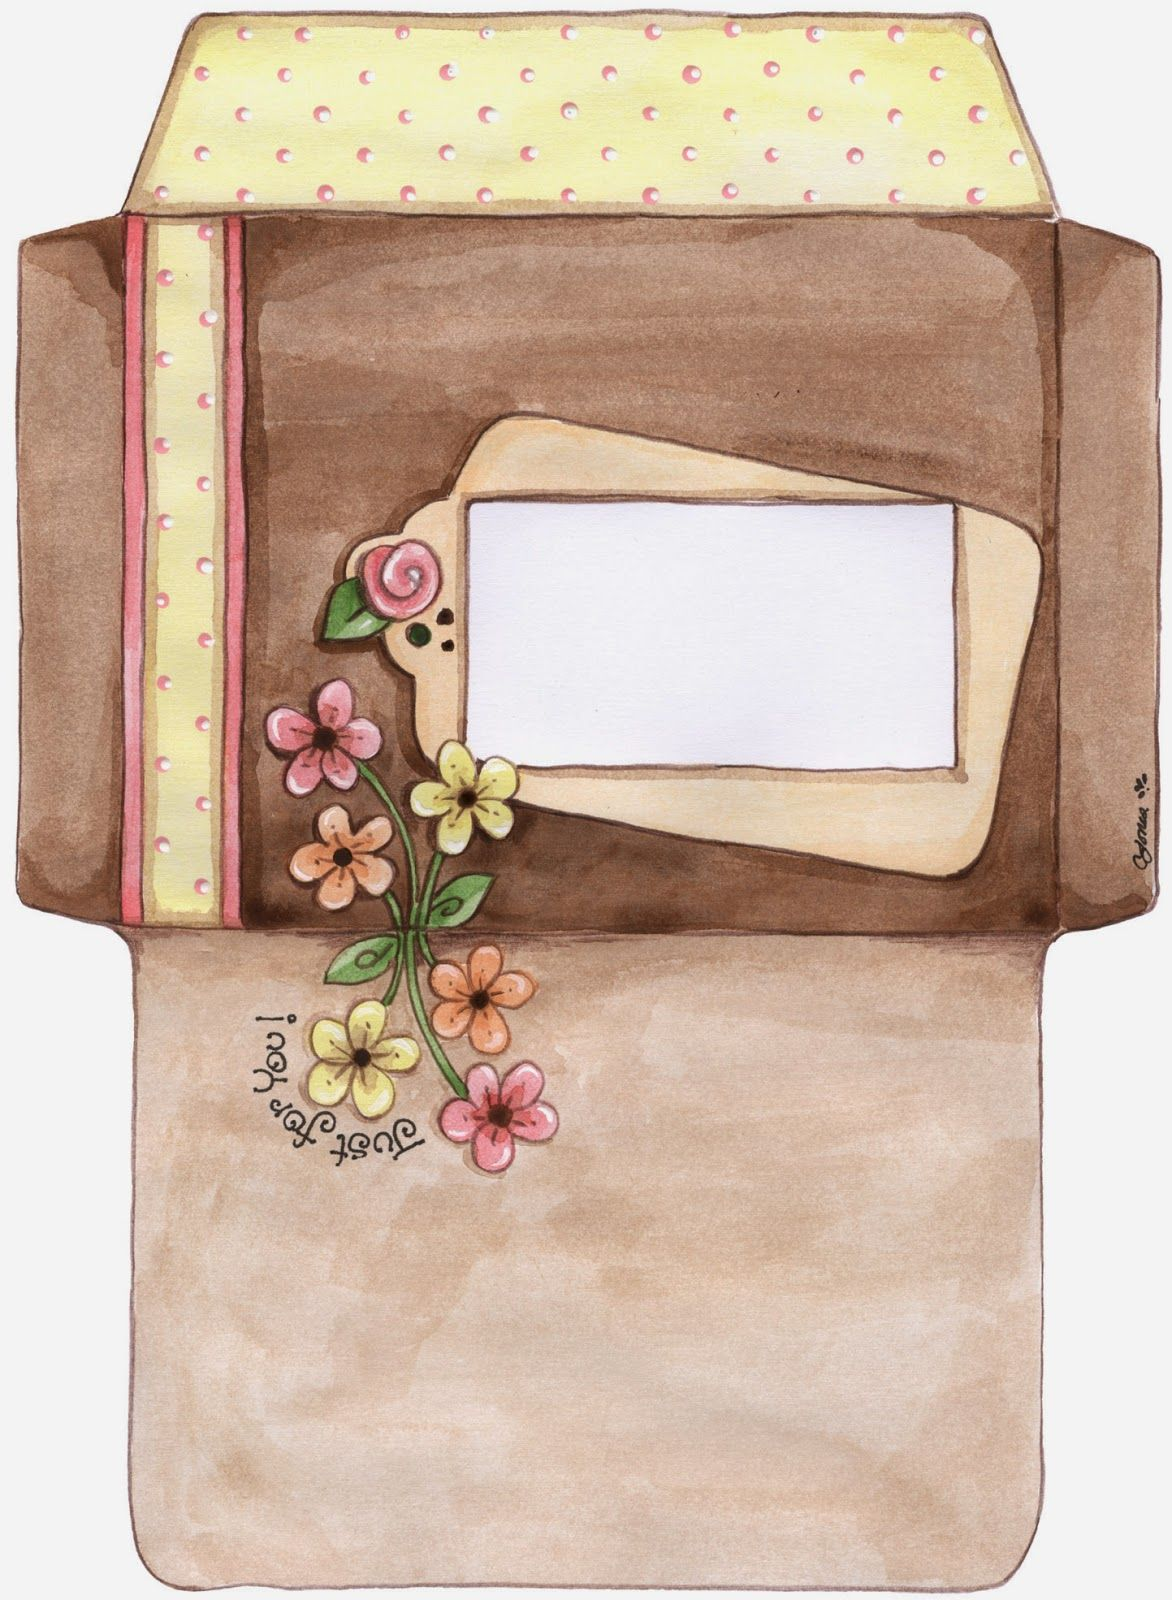 Flowers Free Printable Envelopes. Free printable